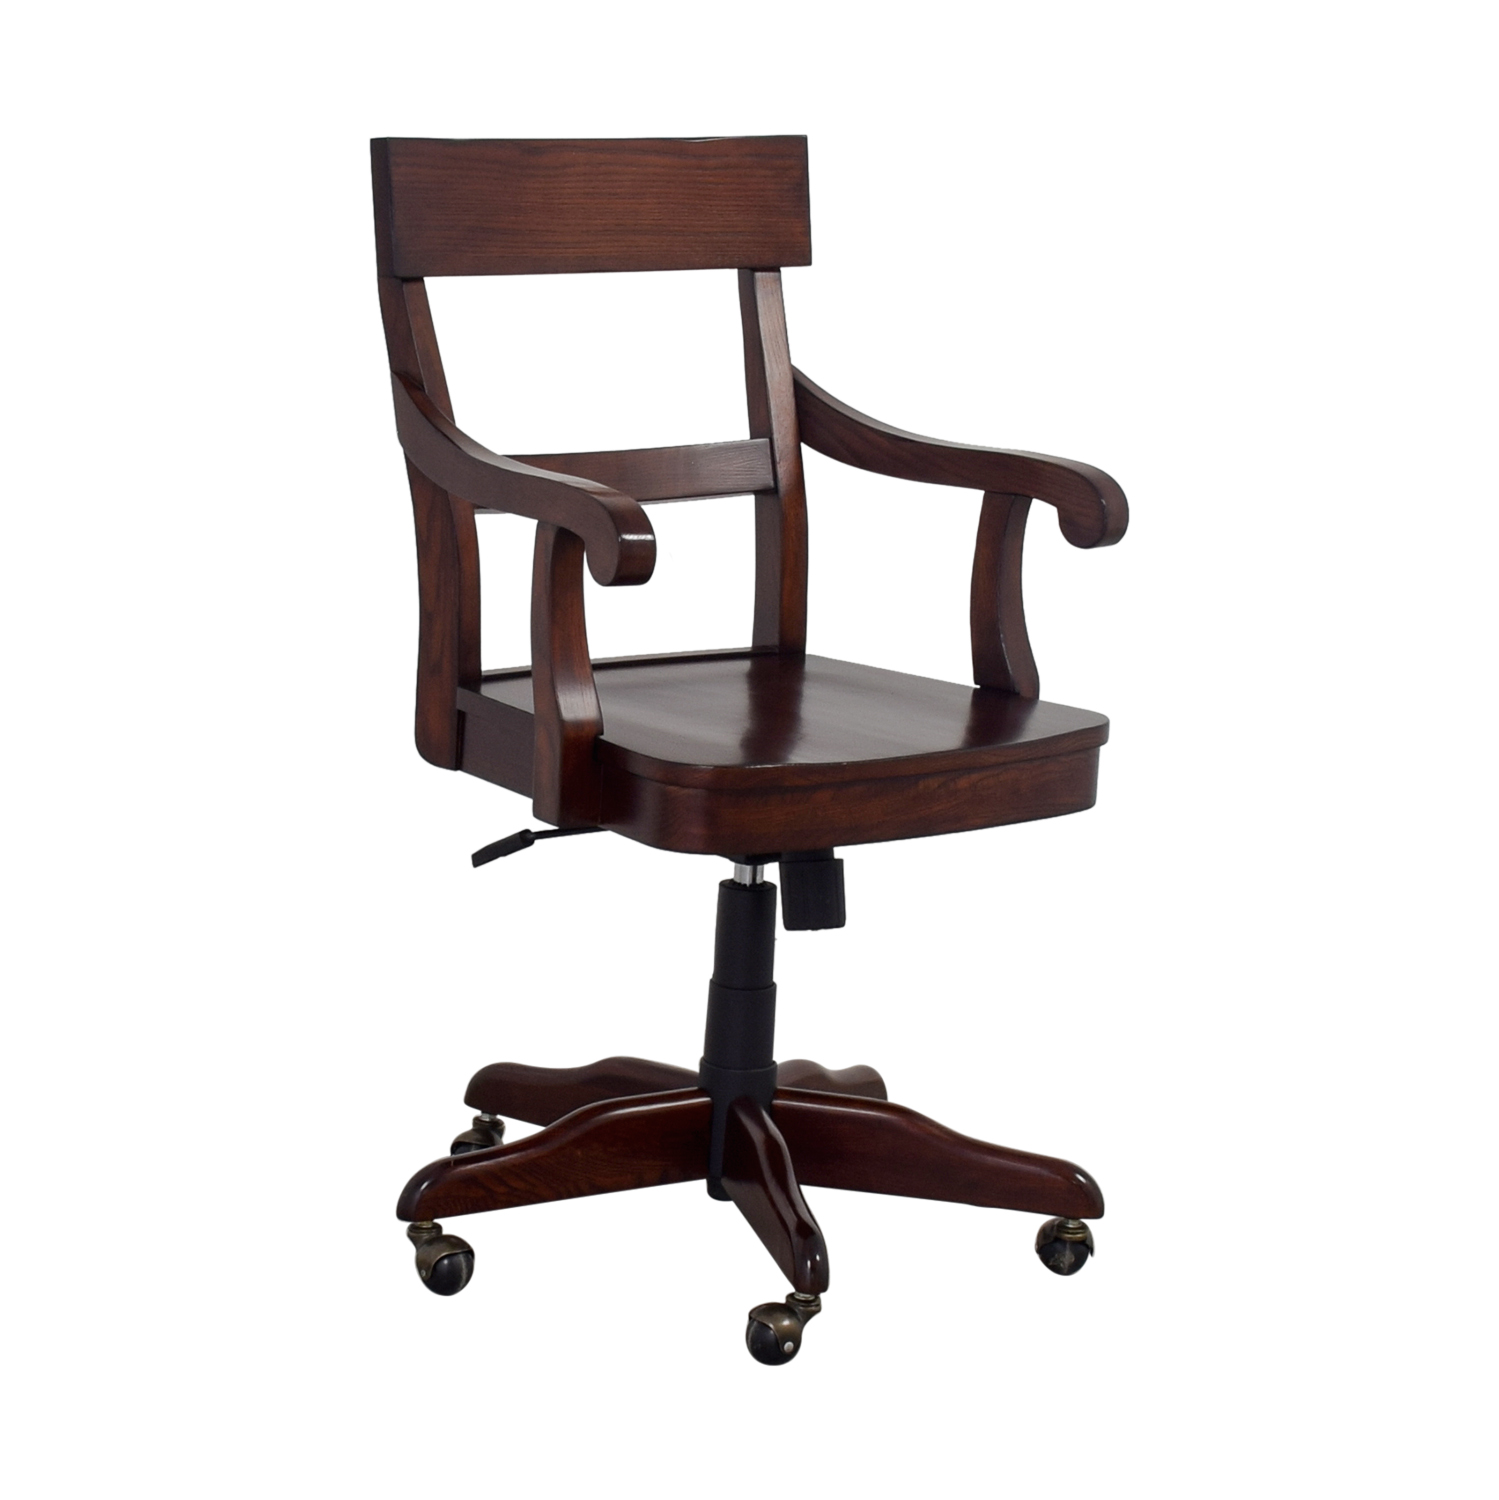 used desk chairs evenflo modern high chair 55 off pottery barn swivel wood